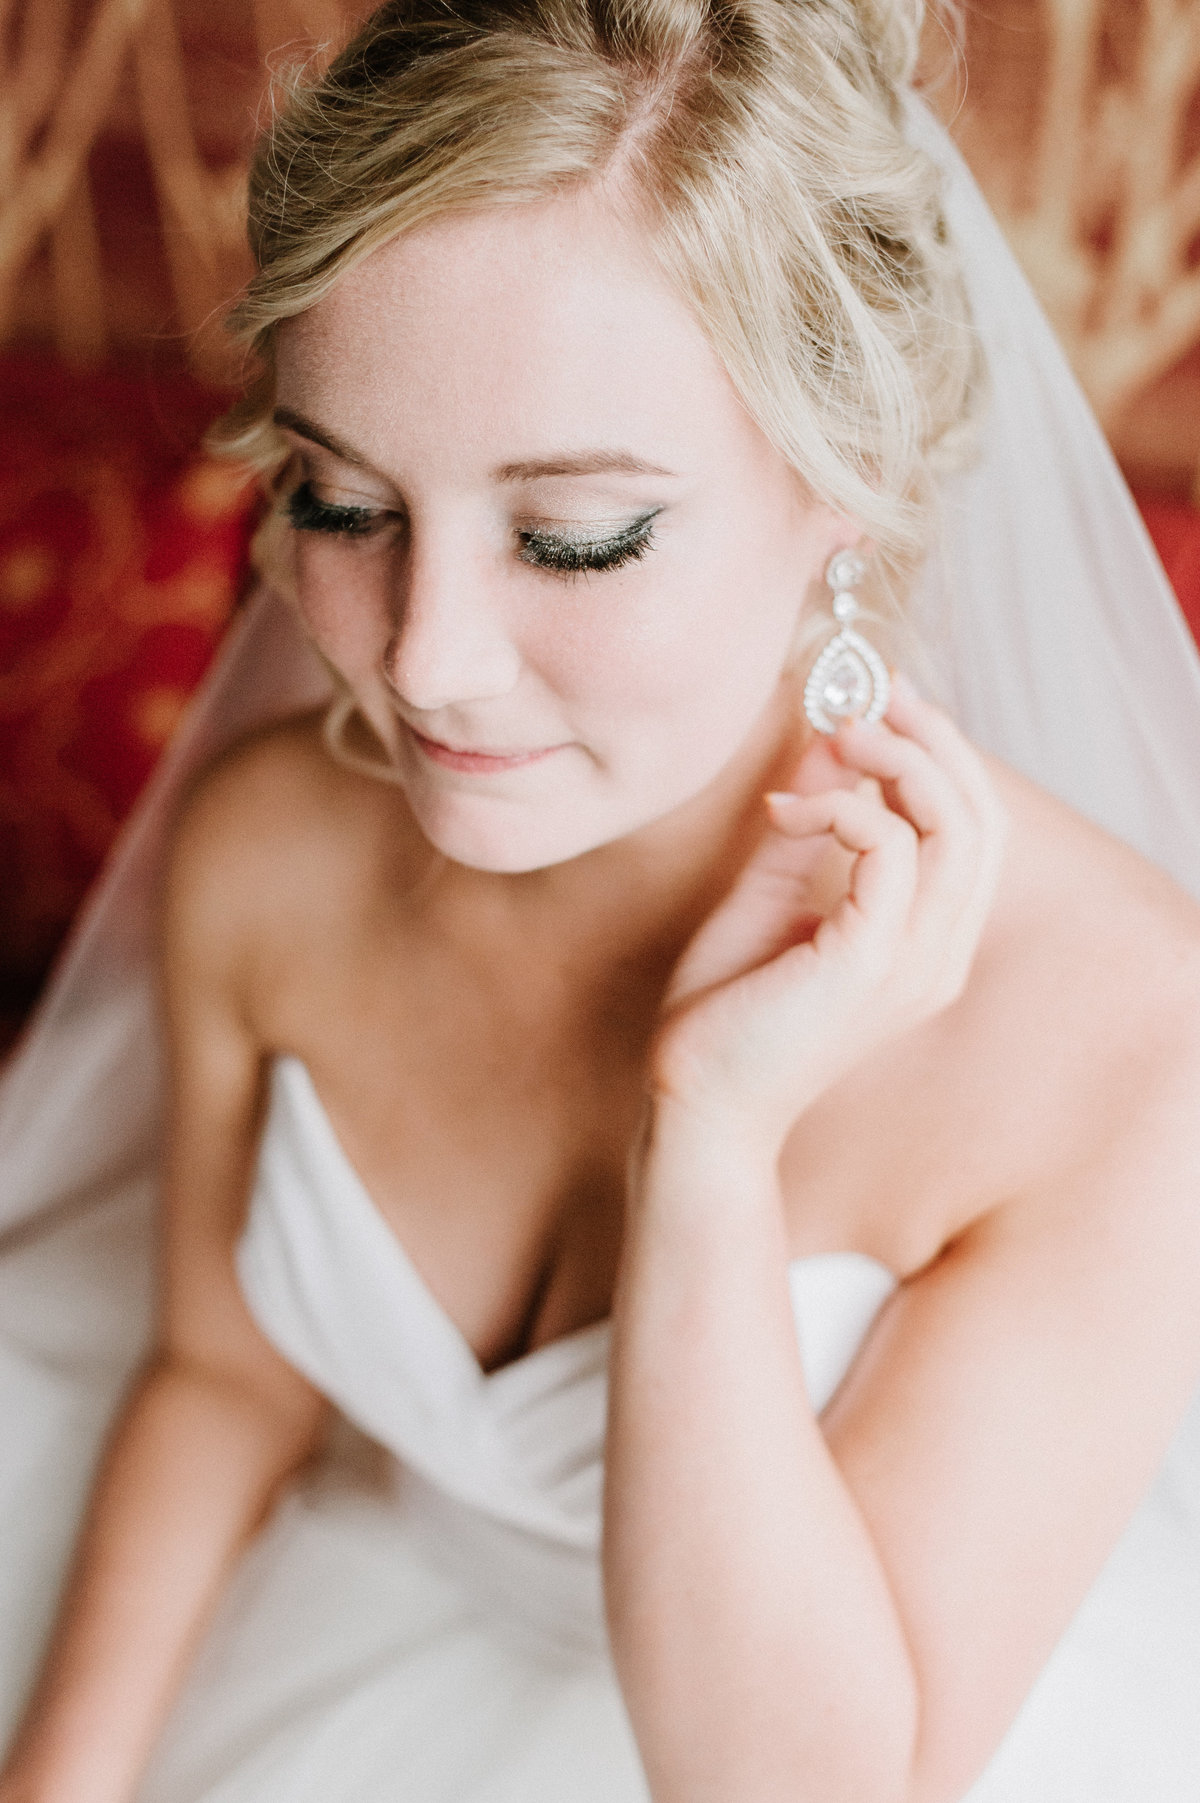 bride wearing strapless dress sitting on couch touching earring